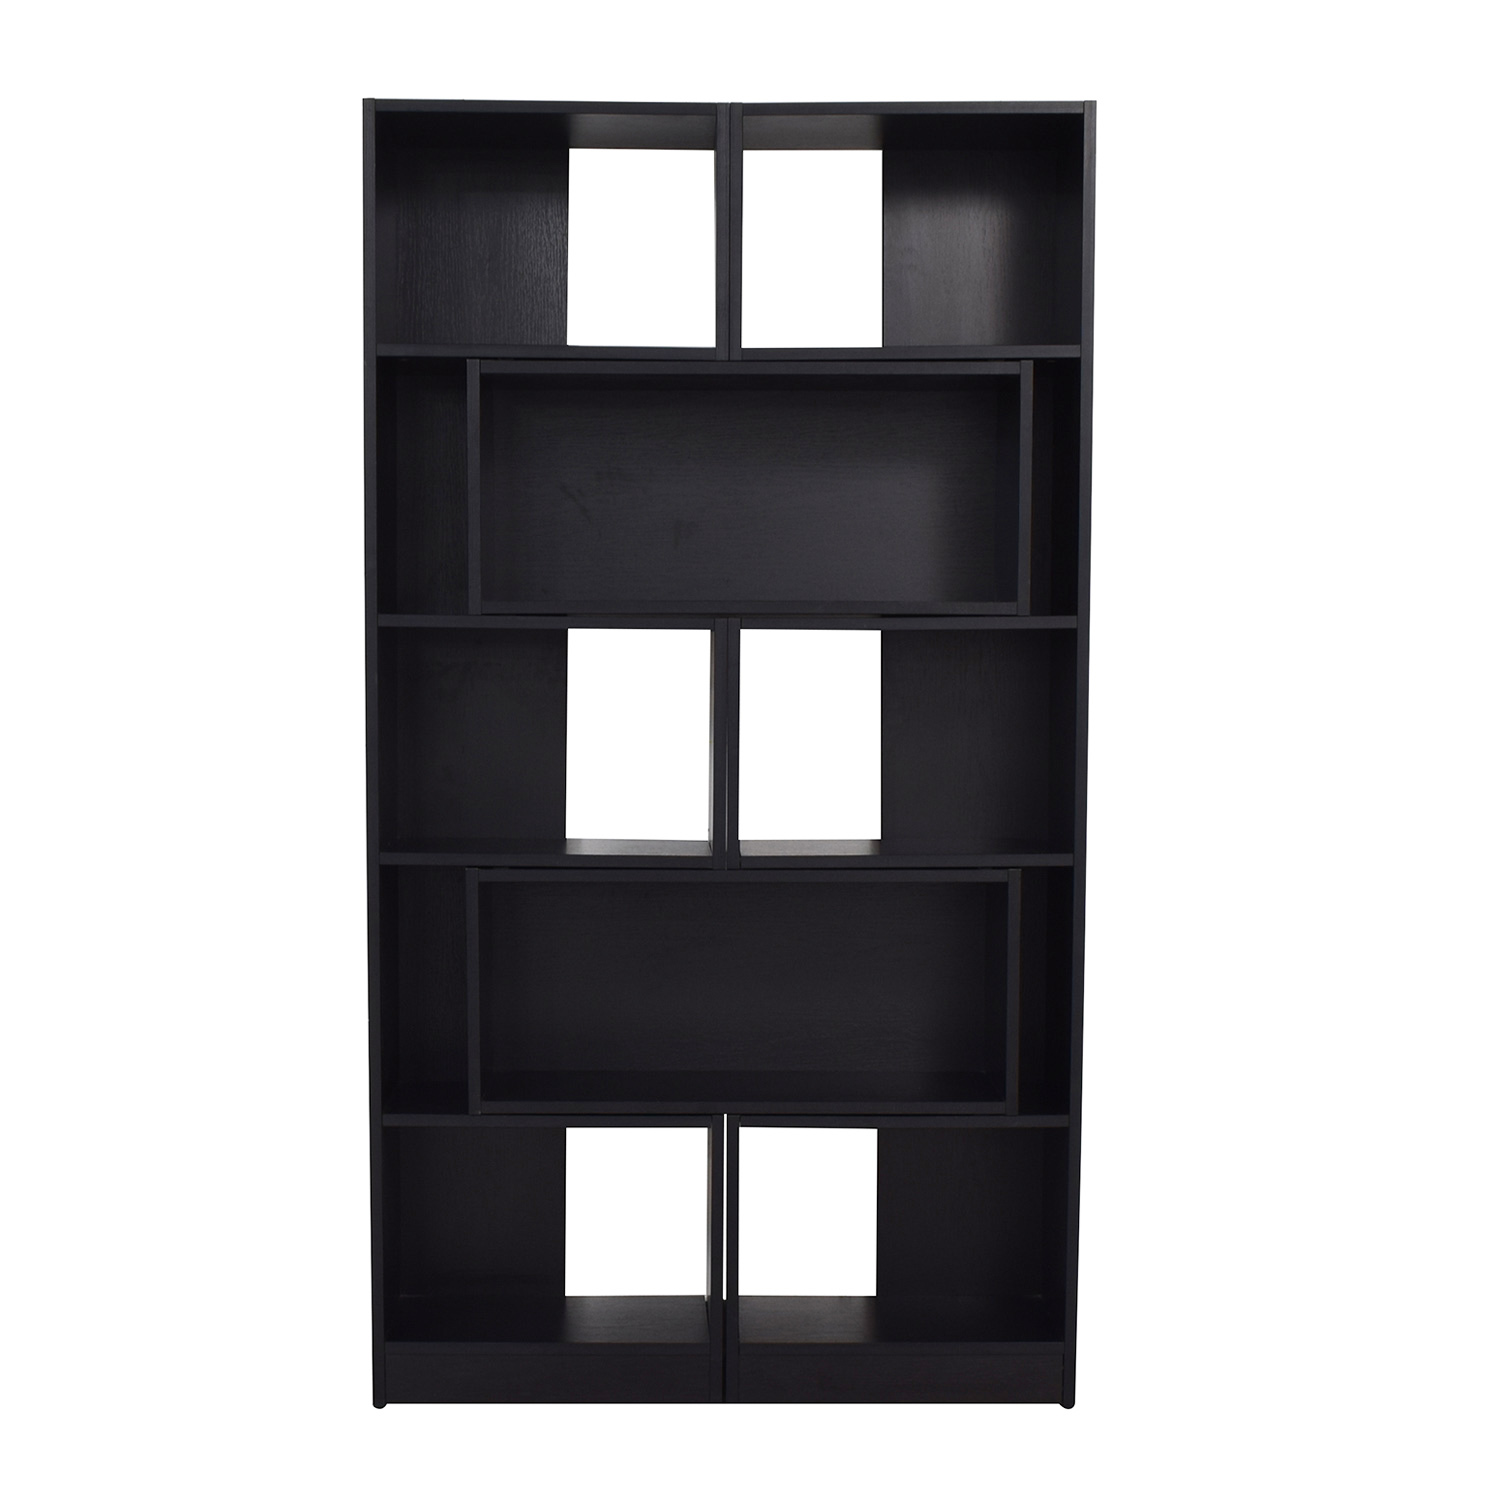 Crate & Barrel Puzzle Black Extendable Bookcase / Bookcases & Shelving